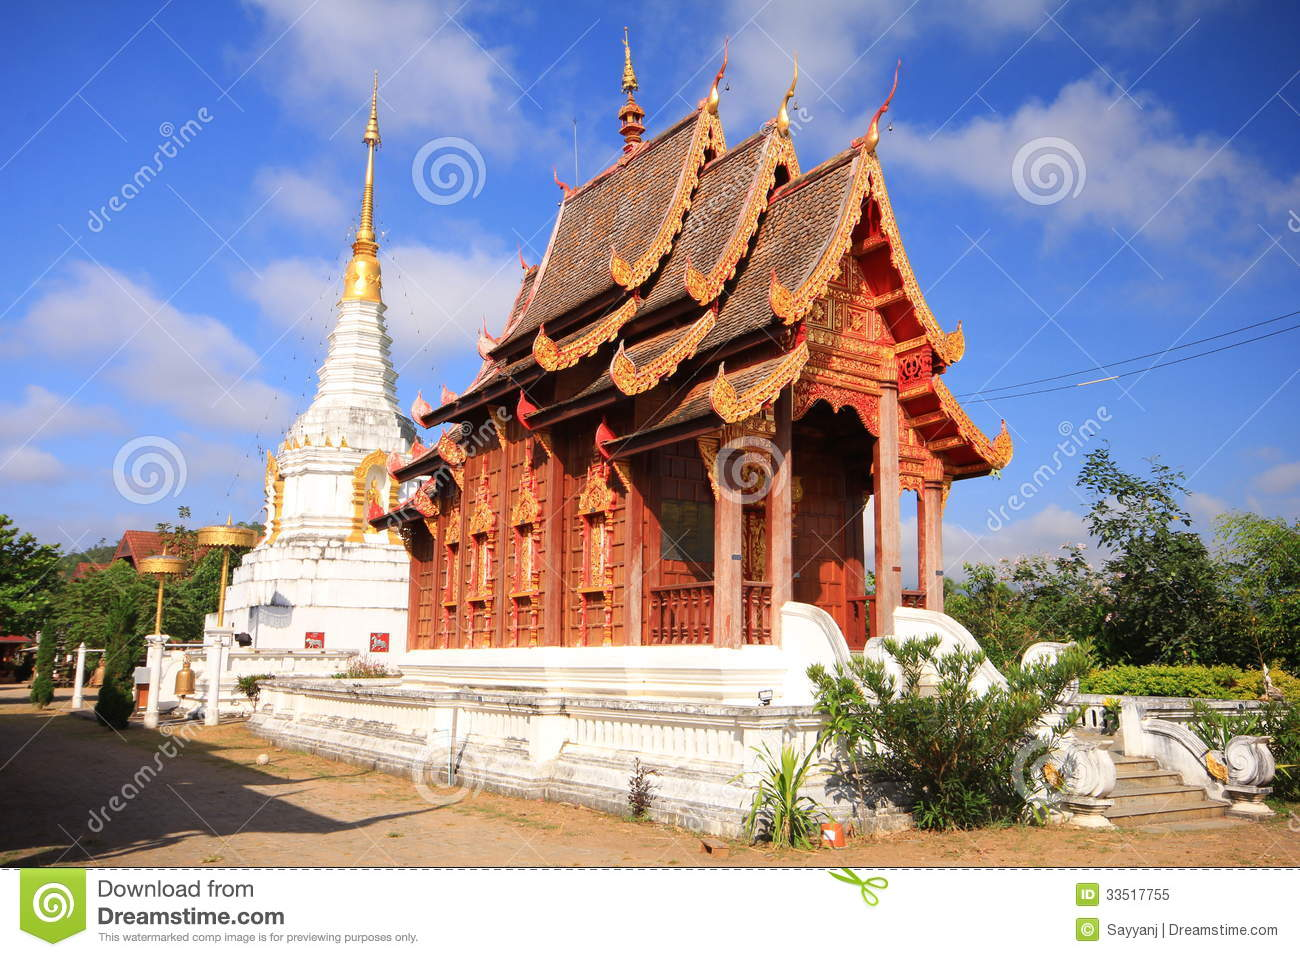 buddhist single men in montpelier station Fairfax station stephens city lansdowne south montpelier carrollton exmore blackstone dinwiddie stress management and the challenges of being single.